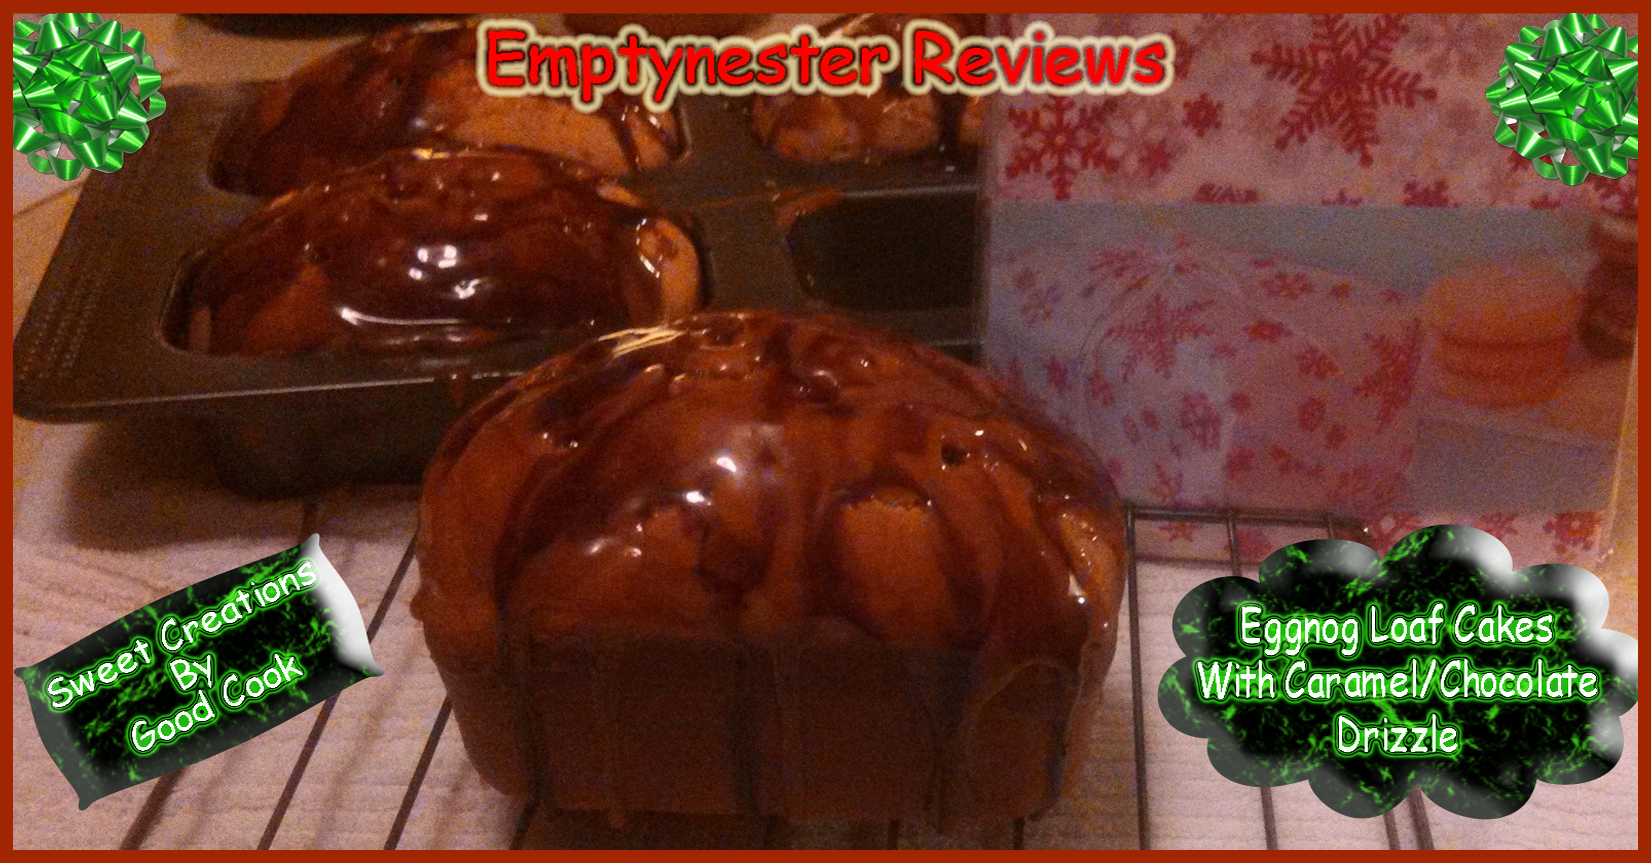 Eggnog loaf cake with Caramel/chocolate drizzle recipe using #SweetCreations 4-cup Loaf pan